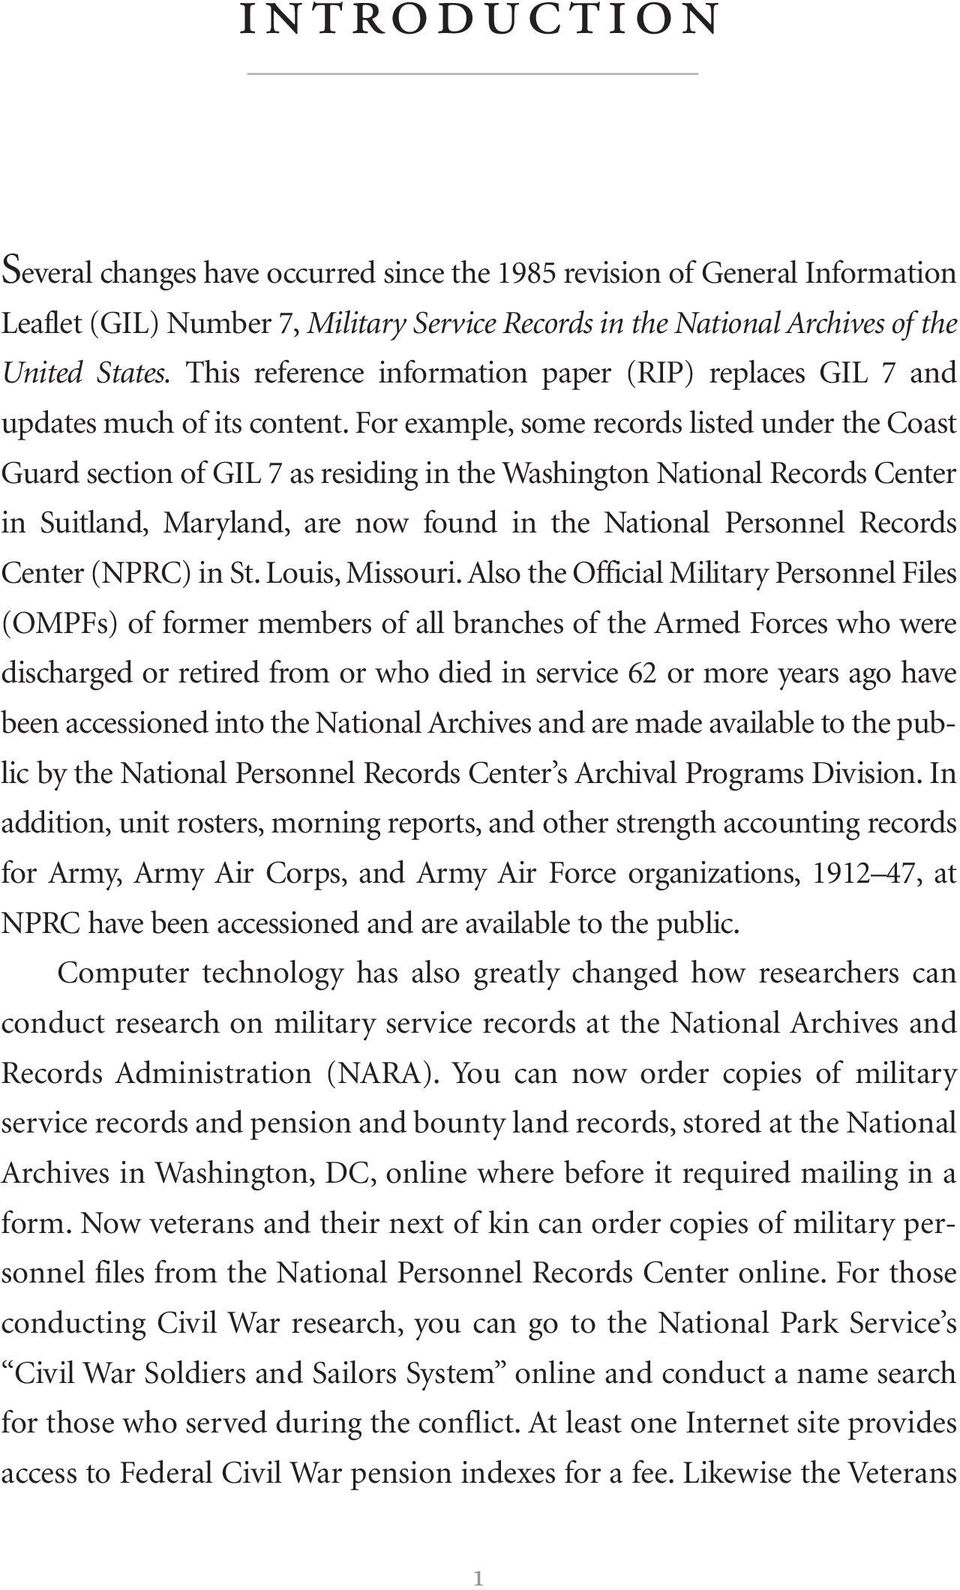 For example, some records listed under the Coast Guard section of GIL 7 as residing in the Washington National Records Center in Suitland, Maryland, are now found in the National Personnel Records